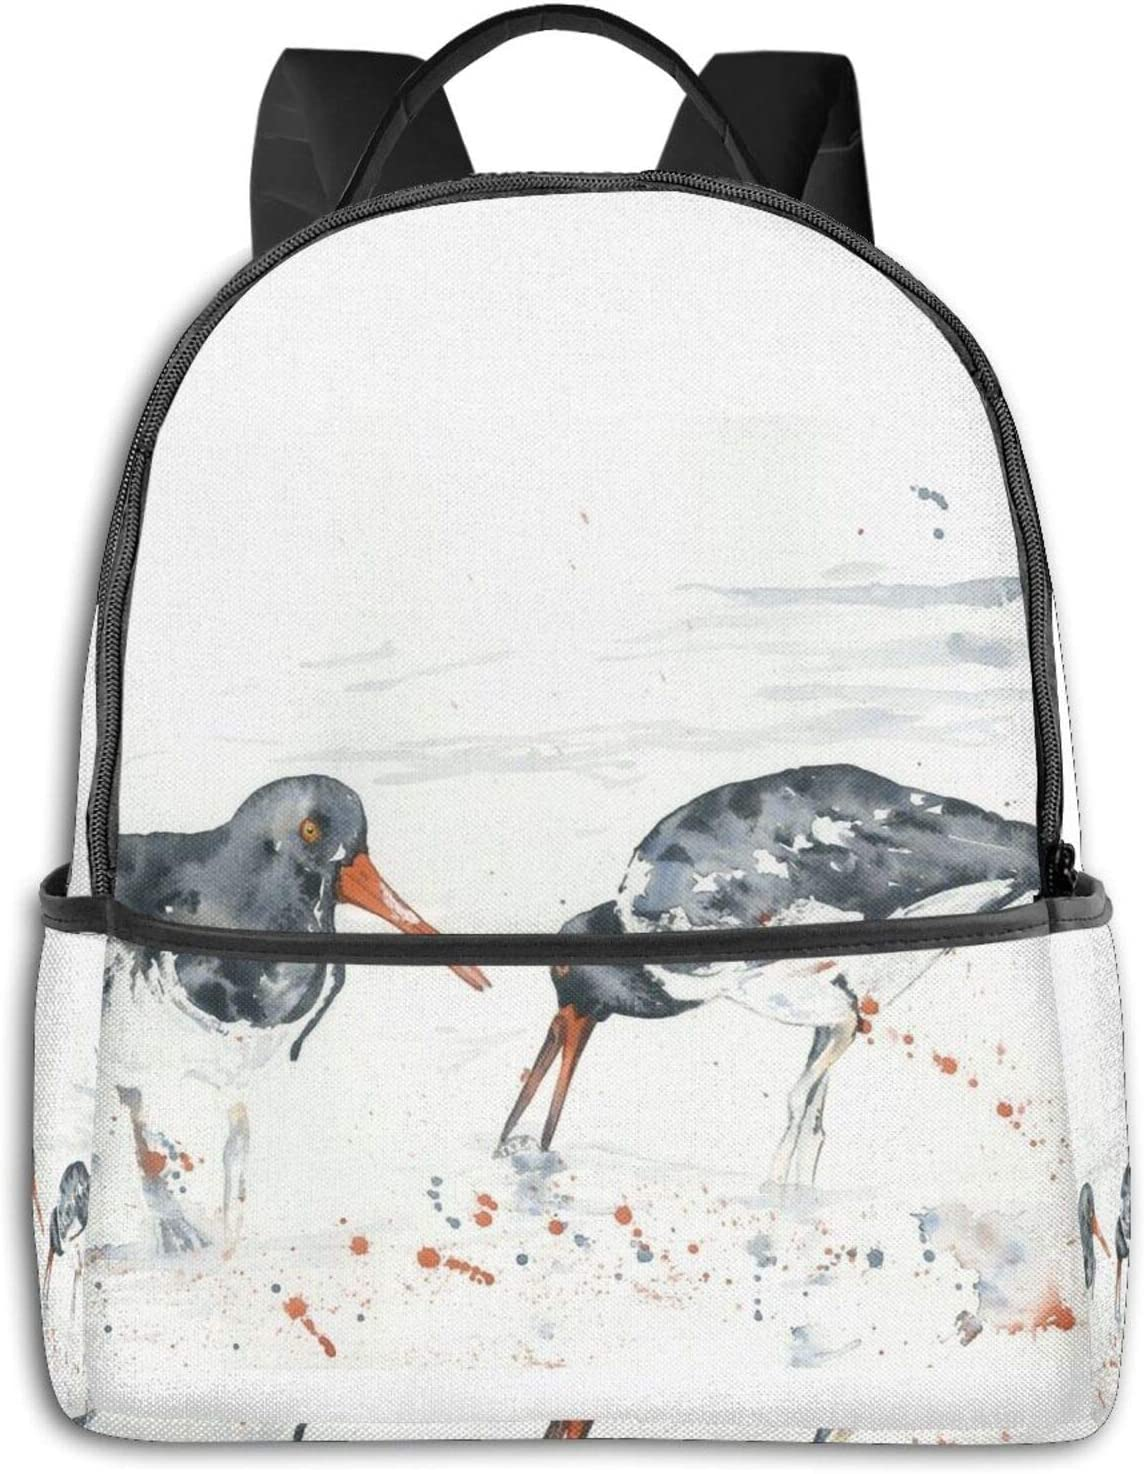 Oyster Cheap Catchers NEW Student School Bag Travel Cycling Leisure